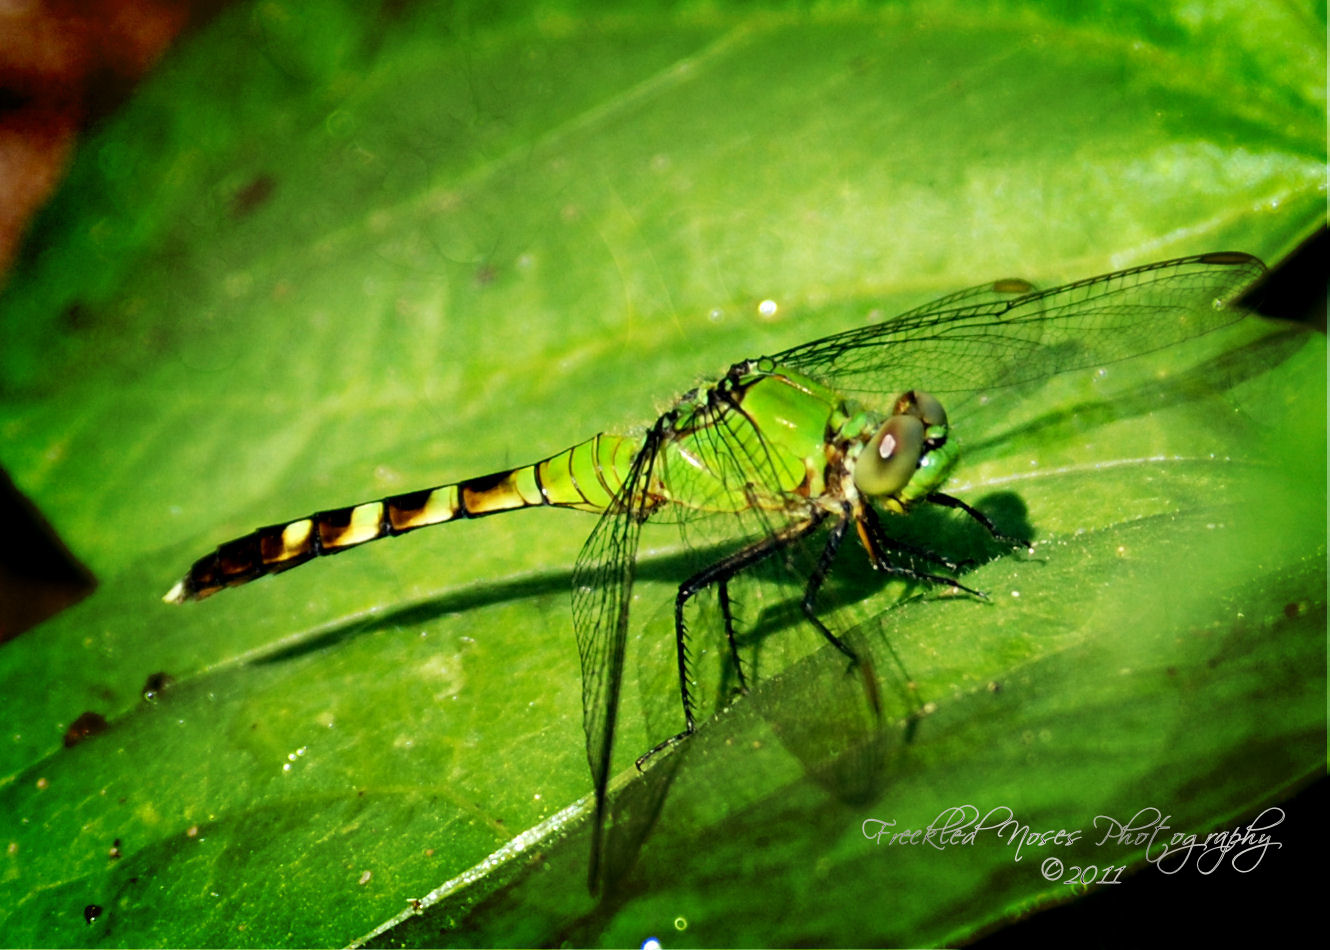 Green dragonfly pictures - photo#16